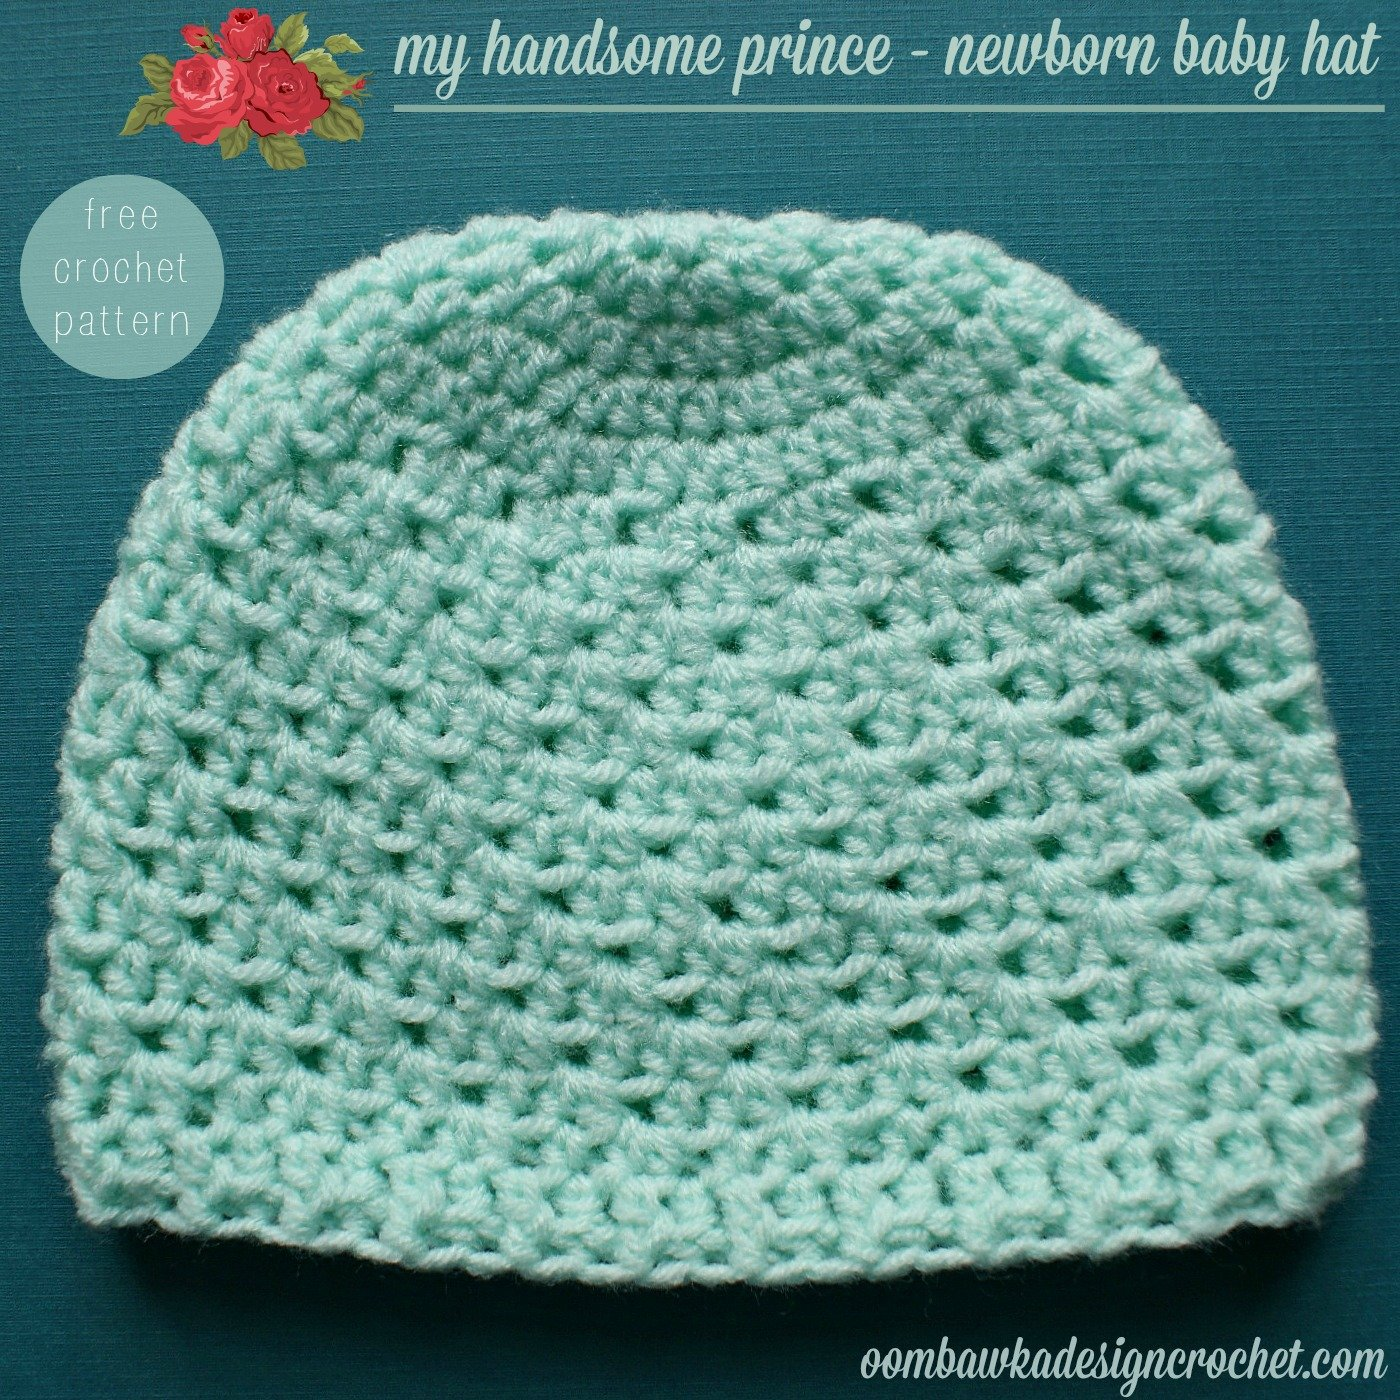 My Handsome Prince Newborn Baby Hat Pattern Oombawka Design Crochet